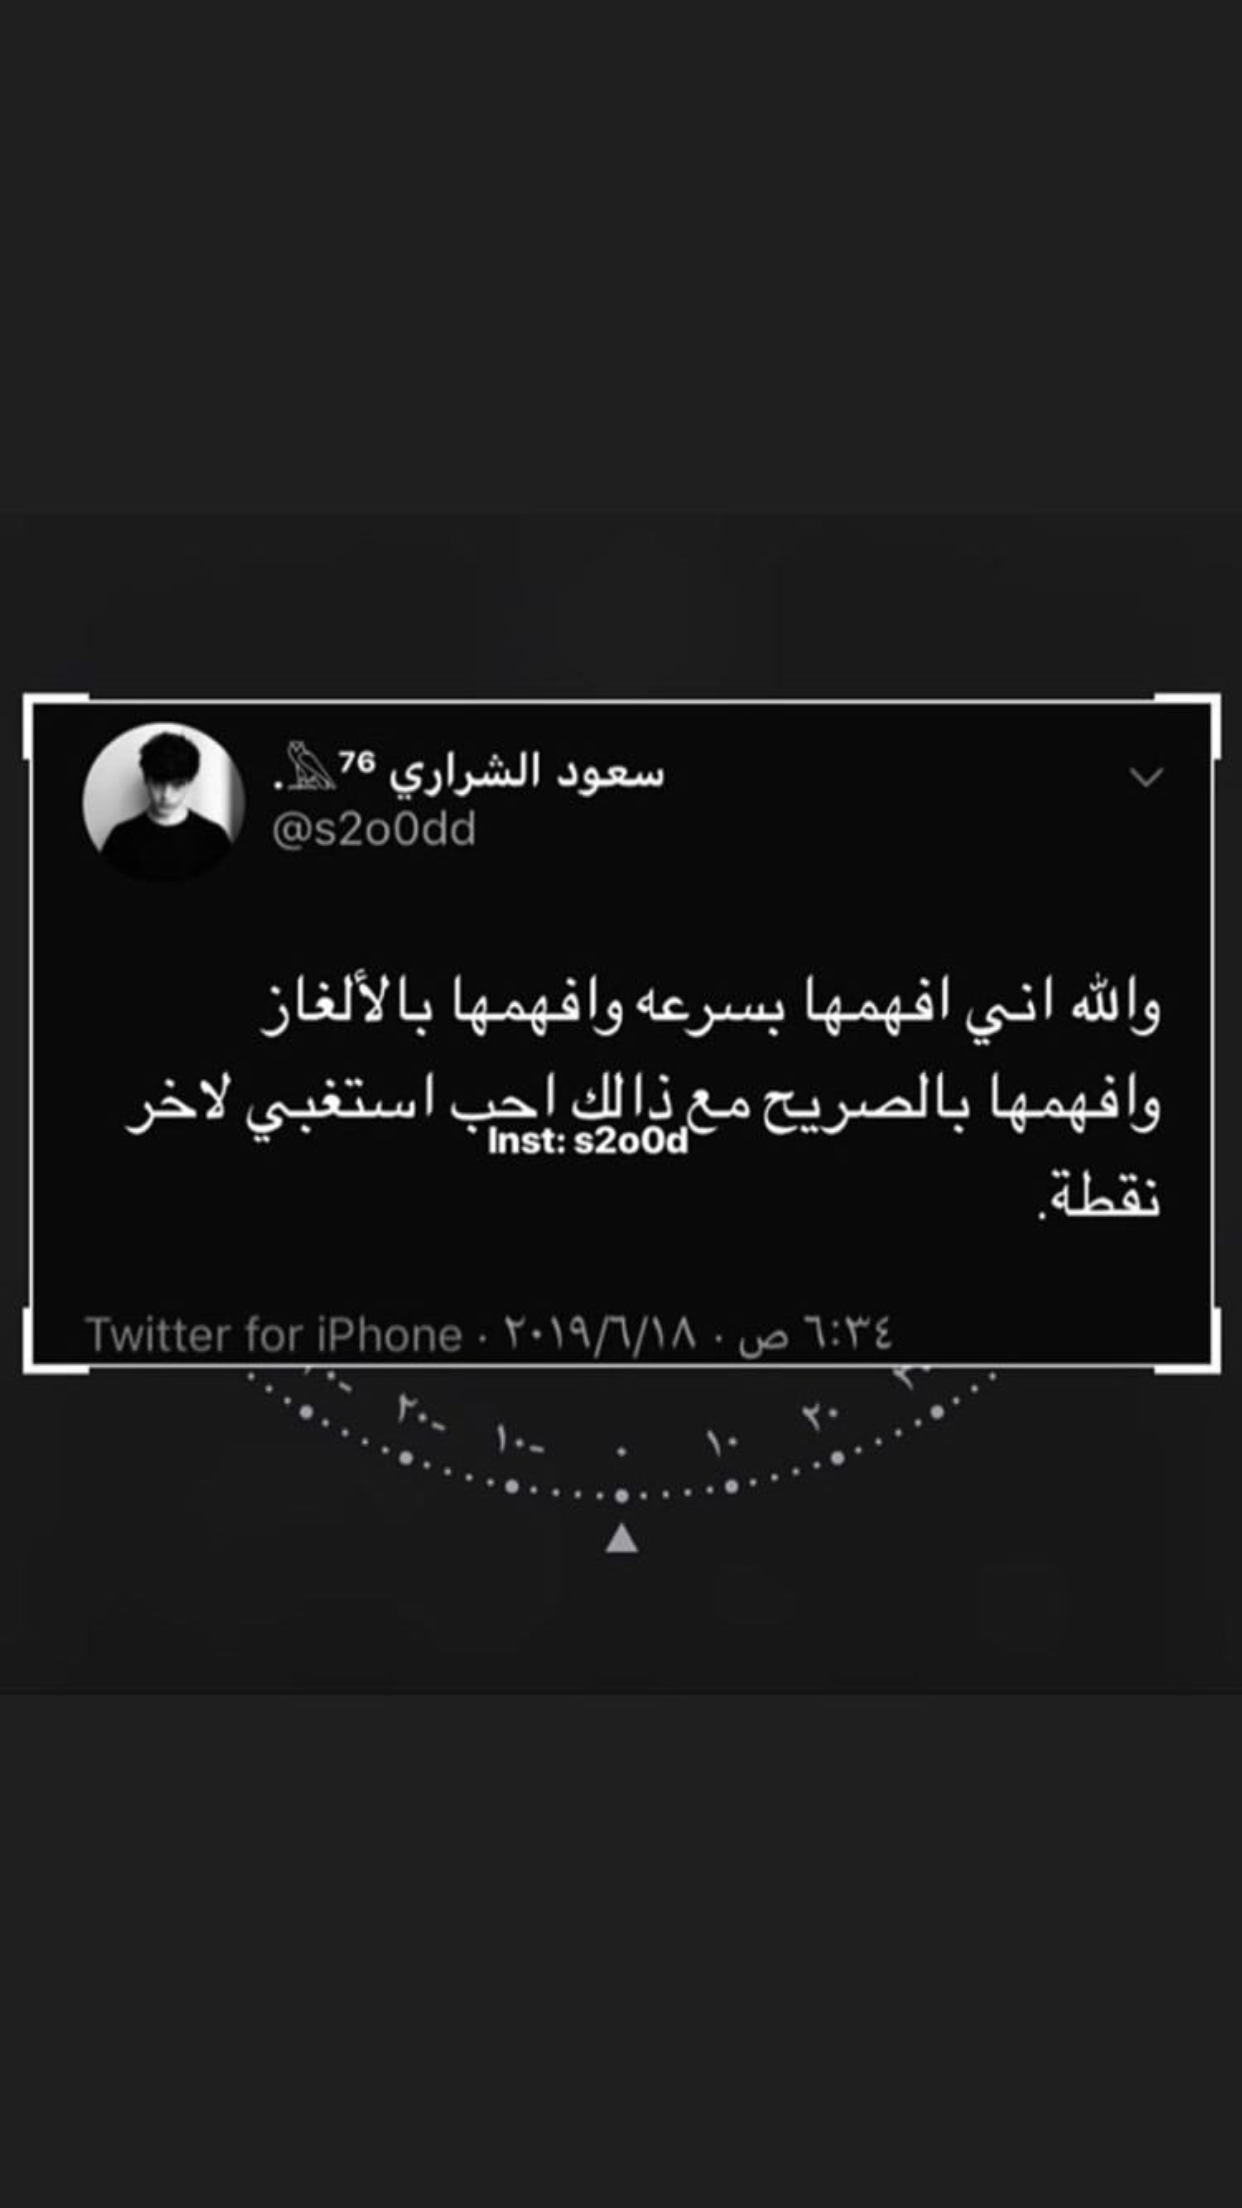 Pin By Sm ɢssɒ On بيــــسيـــات Medical Quotes Laughing Quotes Wisdom Quotes Life